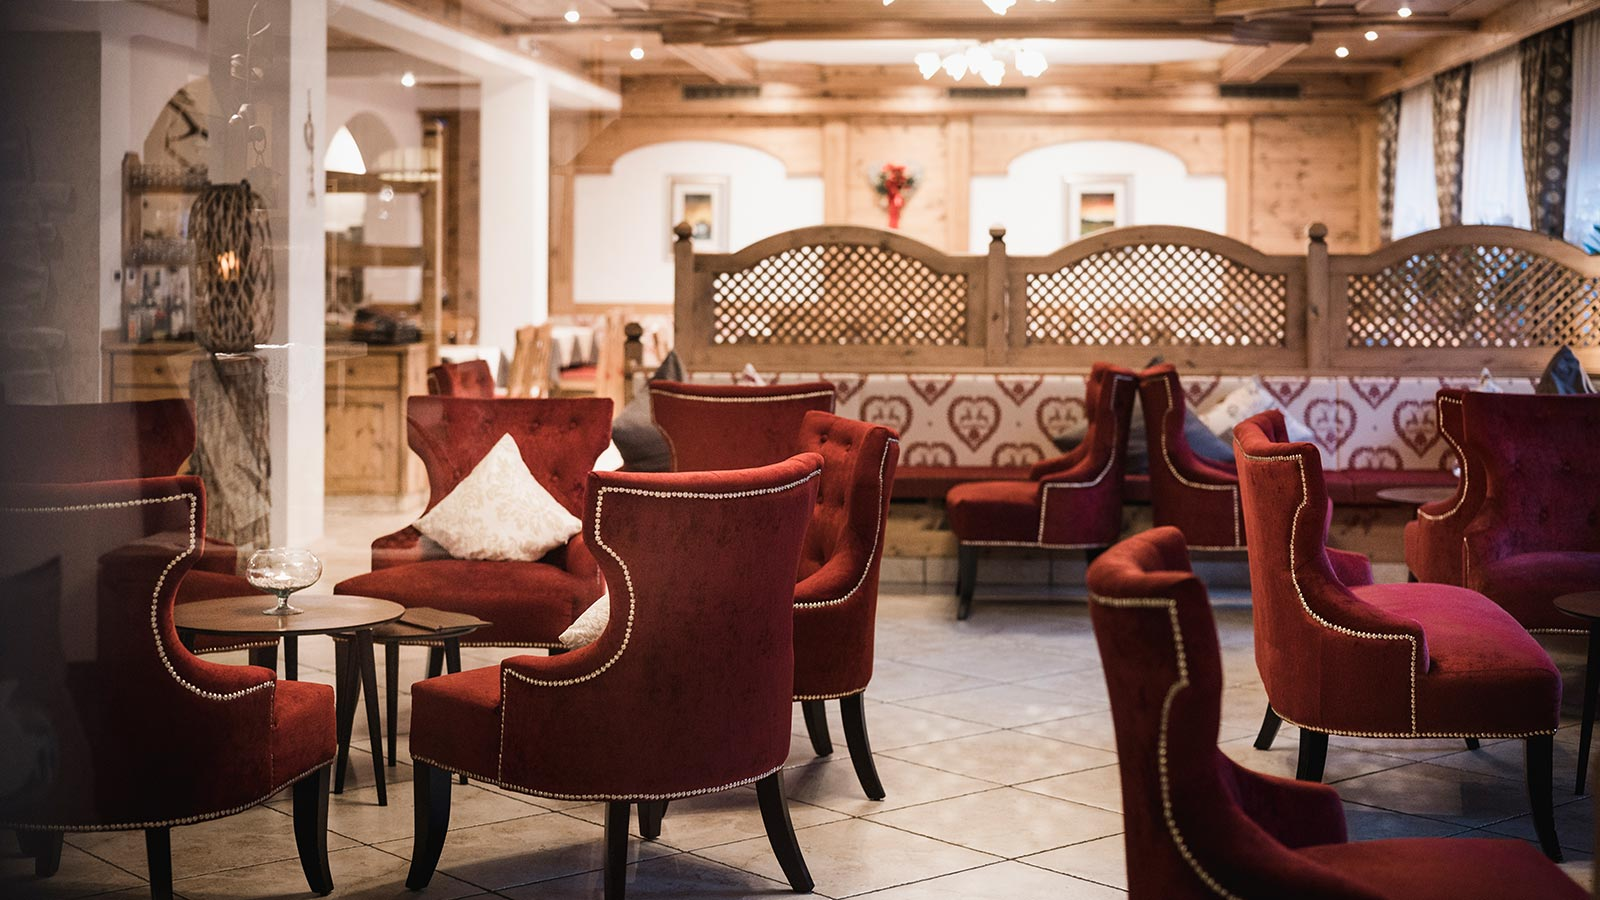 The bar of the Hotel Laguscei with red velvet armchairs and wooden walls